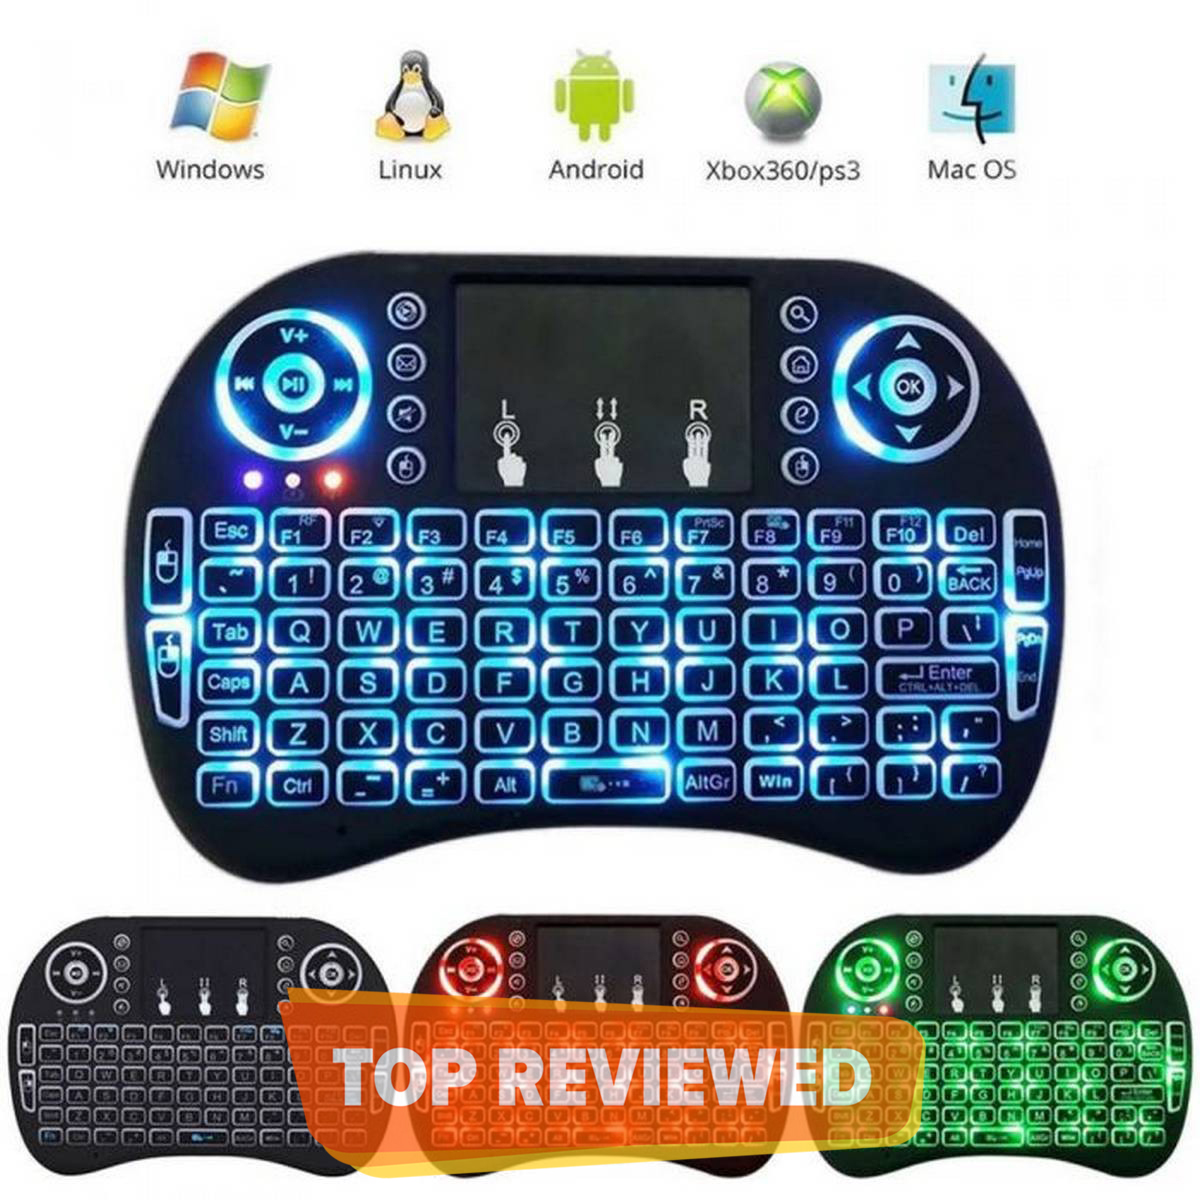 Mini Wireless Keyboard RF-500 with 3 Color RGB Backlit, 2.4GHz Wireless Mini Keyboard Rechargeable Controller with Touchpad Mouse Combo, Compatible with Android TV Box, IPTV, HTPC, Smart TV, PC,etc. Lighting Keybaord, Gaming Keybaord for Android TV